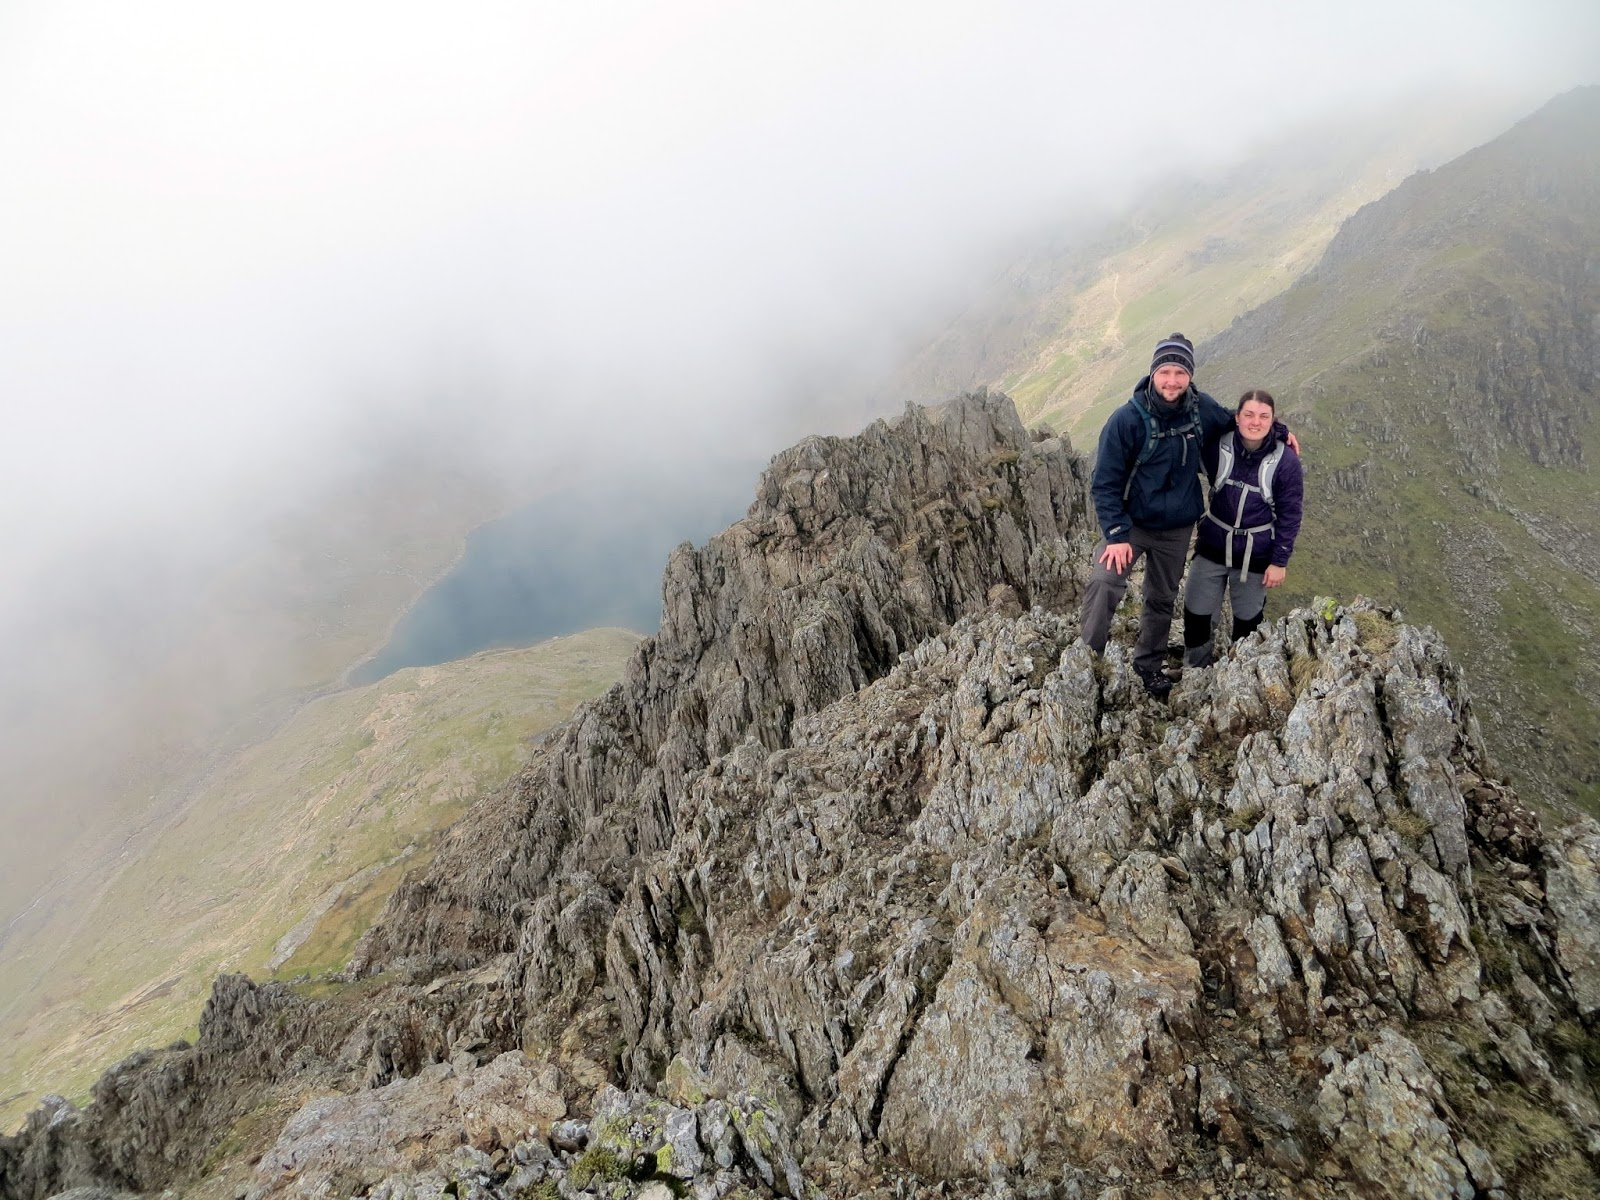 Wales, climbing, adventure, trad, sport, llanberis, snowdon, snowdonia, great britain, uk, outdoors, landscape, photography, scenic, beautiful,crib goch, high, scary, ridge, red ridge, arete, high, scramble, climb, mountain,